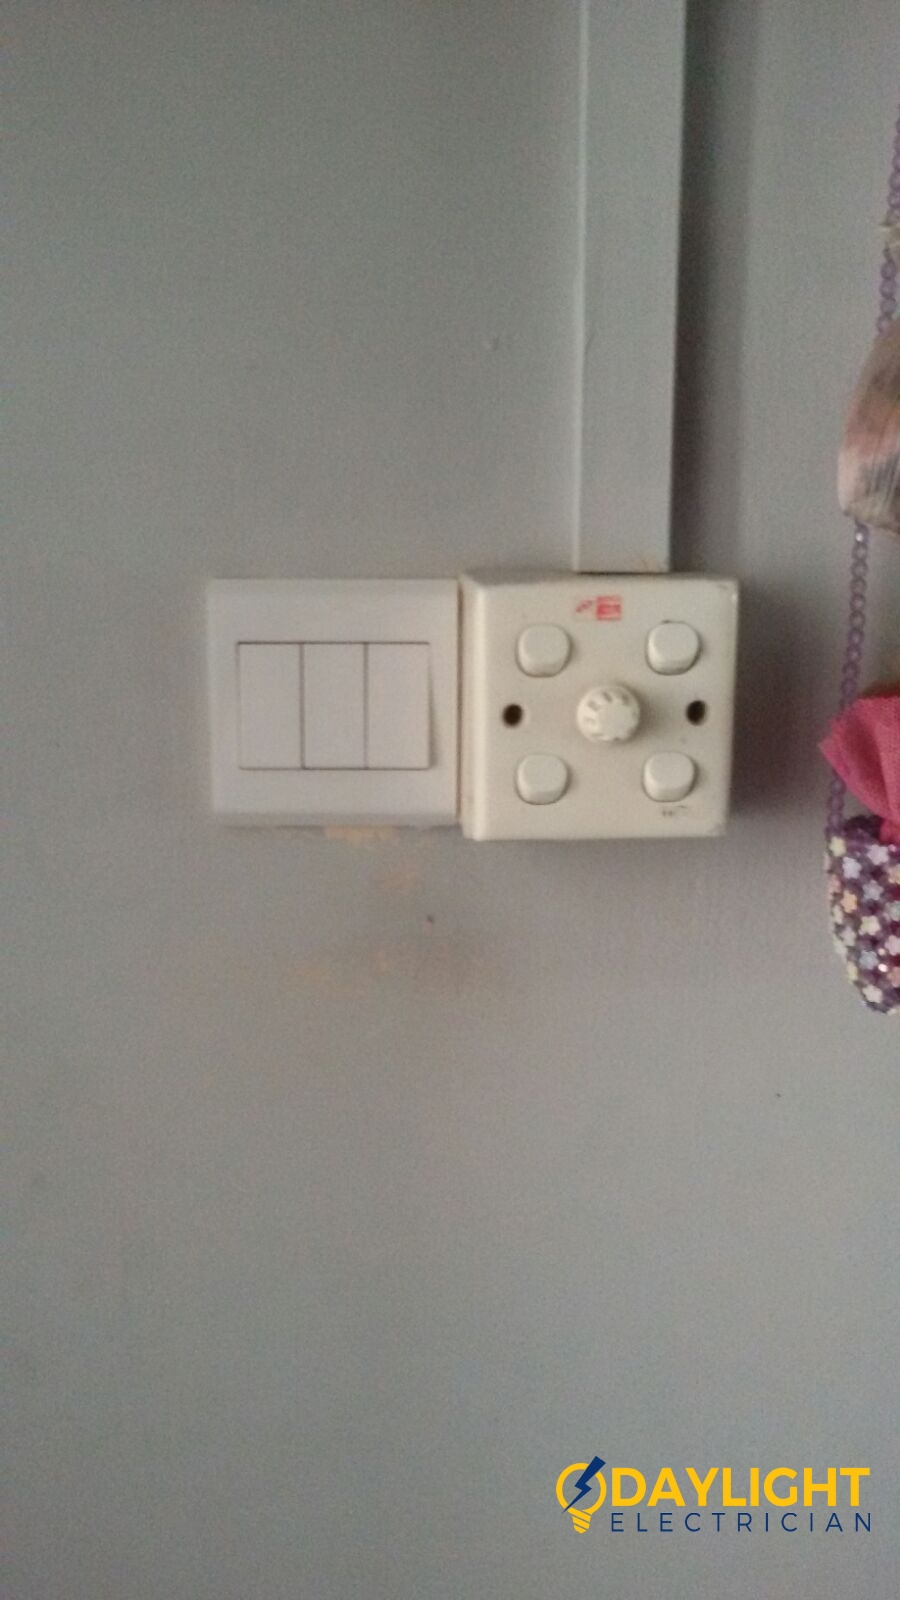 replace-light-switch-electrician-singapore-bedok-hdb-8